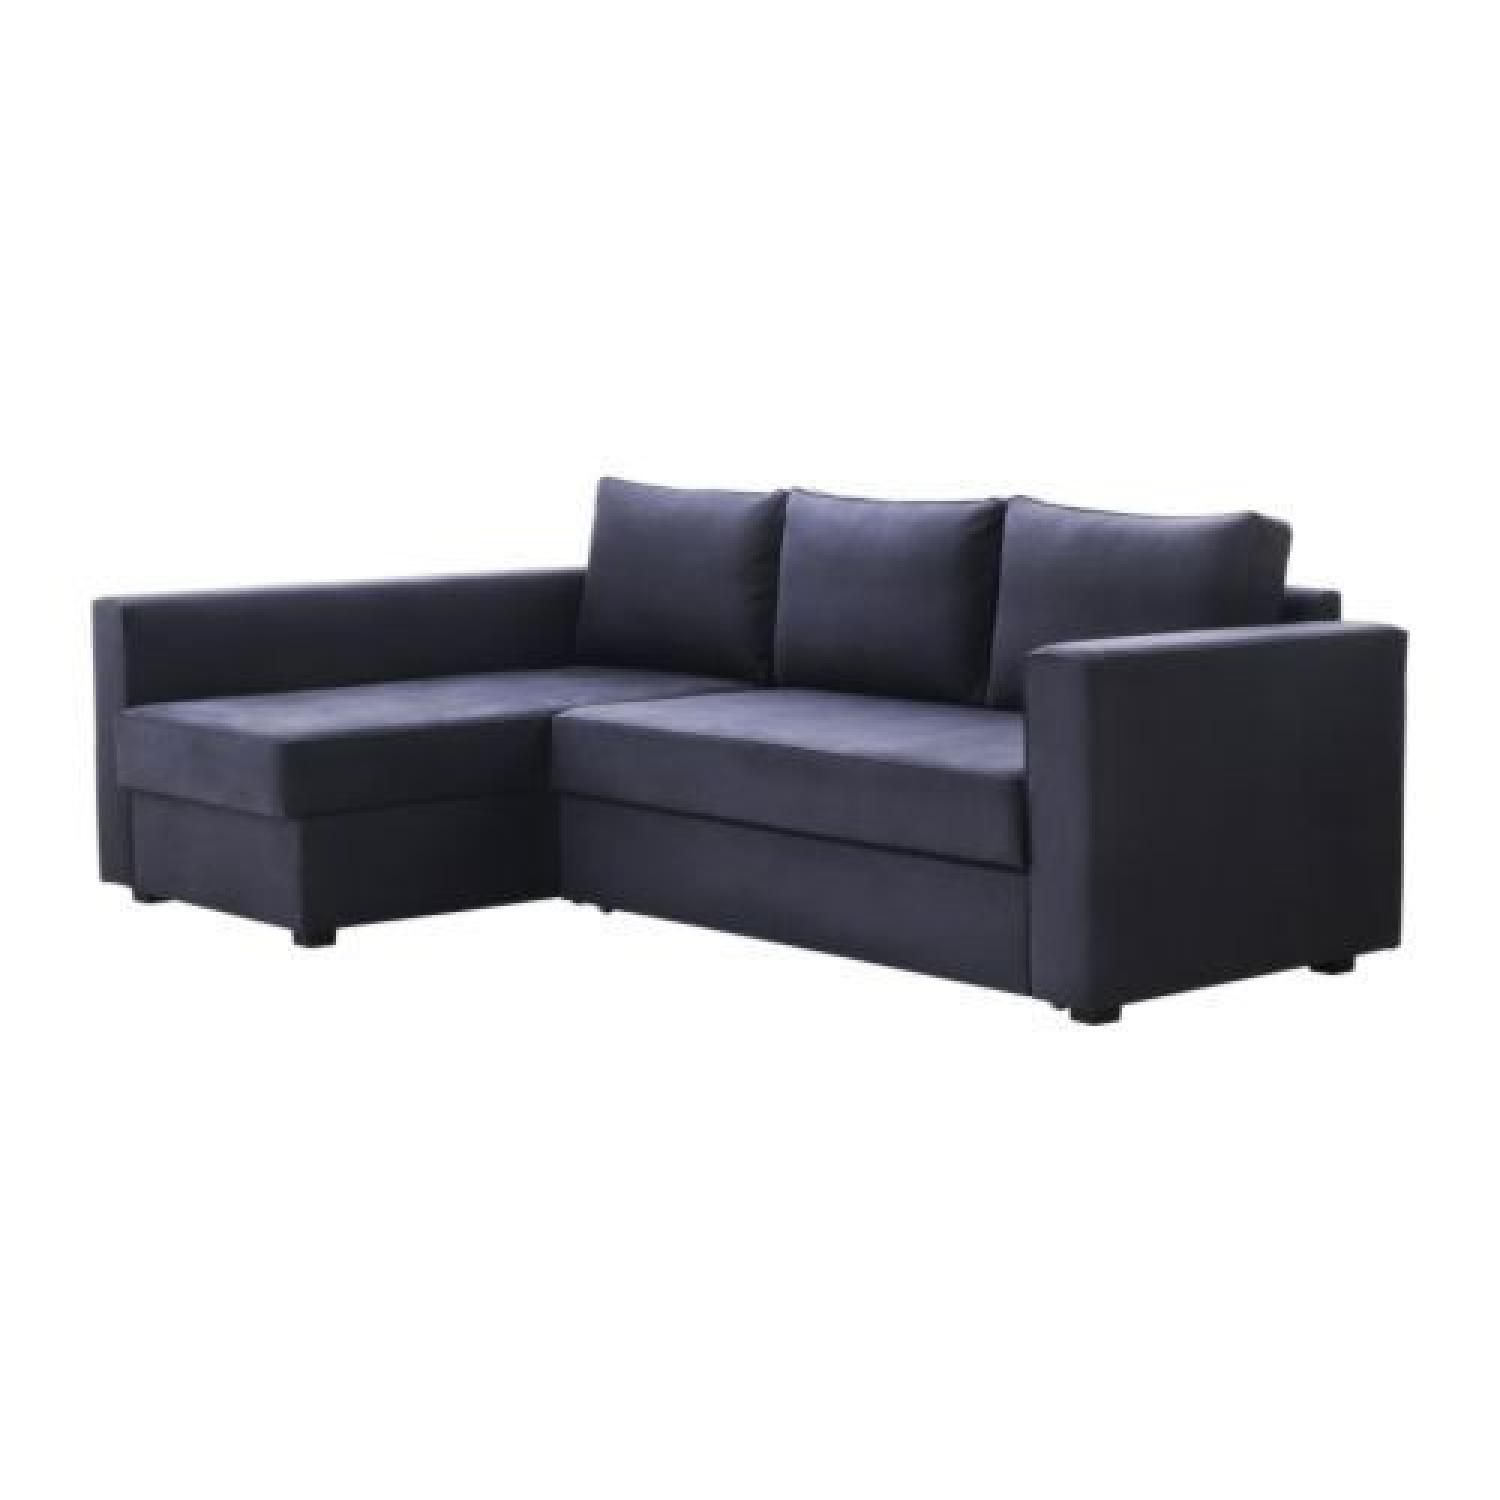 corner sofa bed new york repair miami ikea manstad corne sleeper sectional in blue gray satisfactory condition available for sale ny 10128